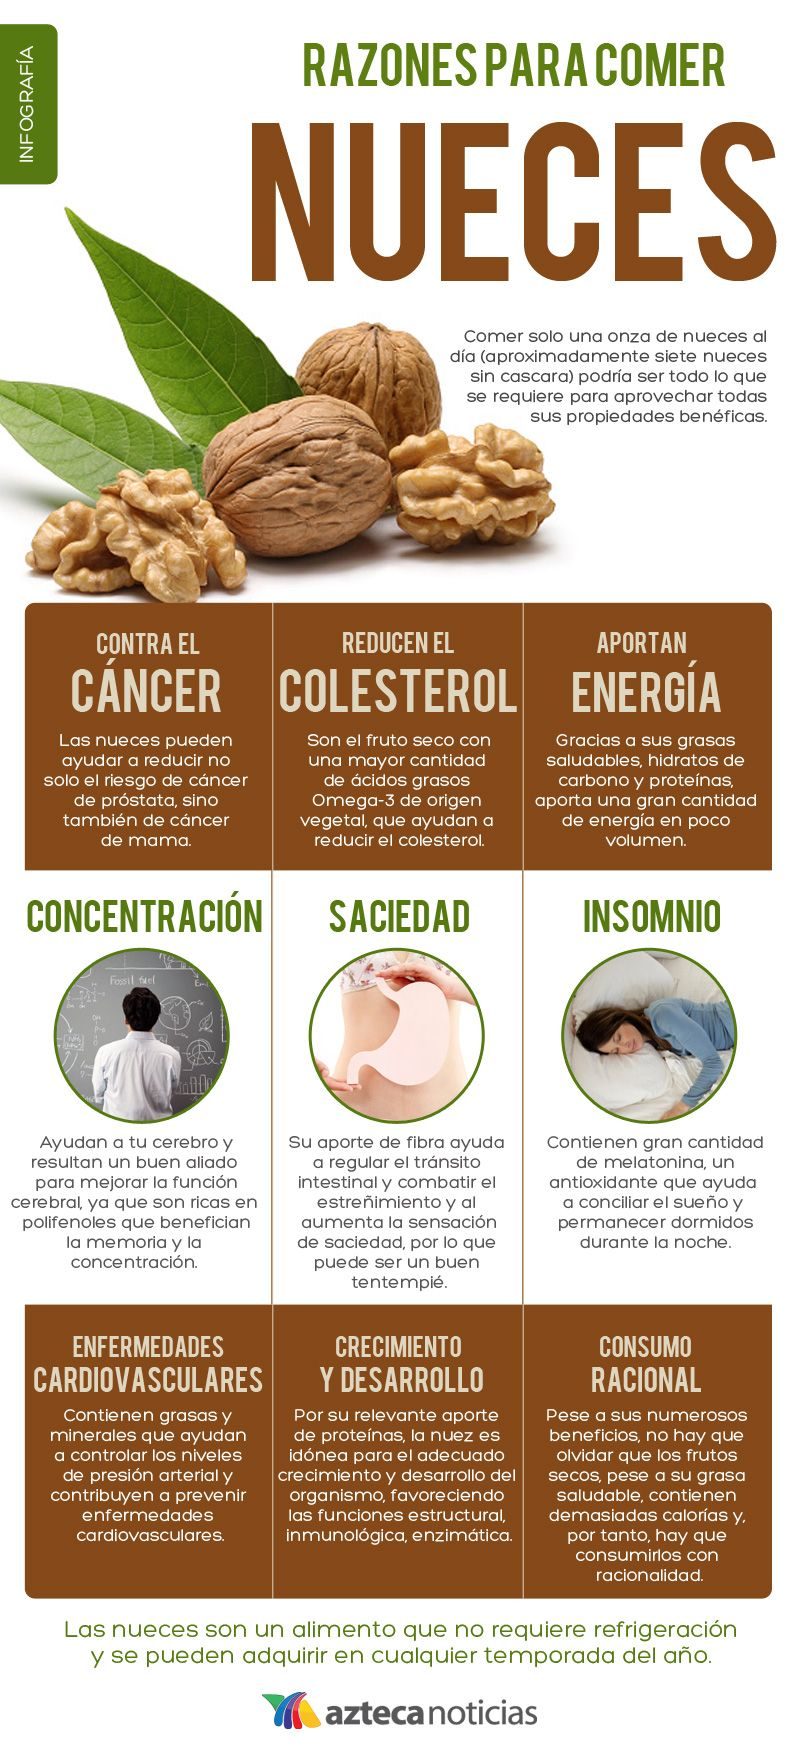 Razones Para Comer Nueces Infografia Nutrition Activities Healthy Juices Health Food